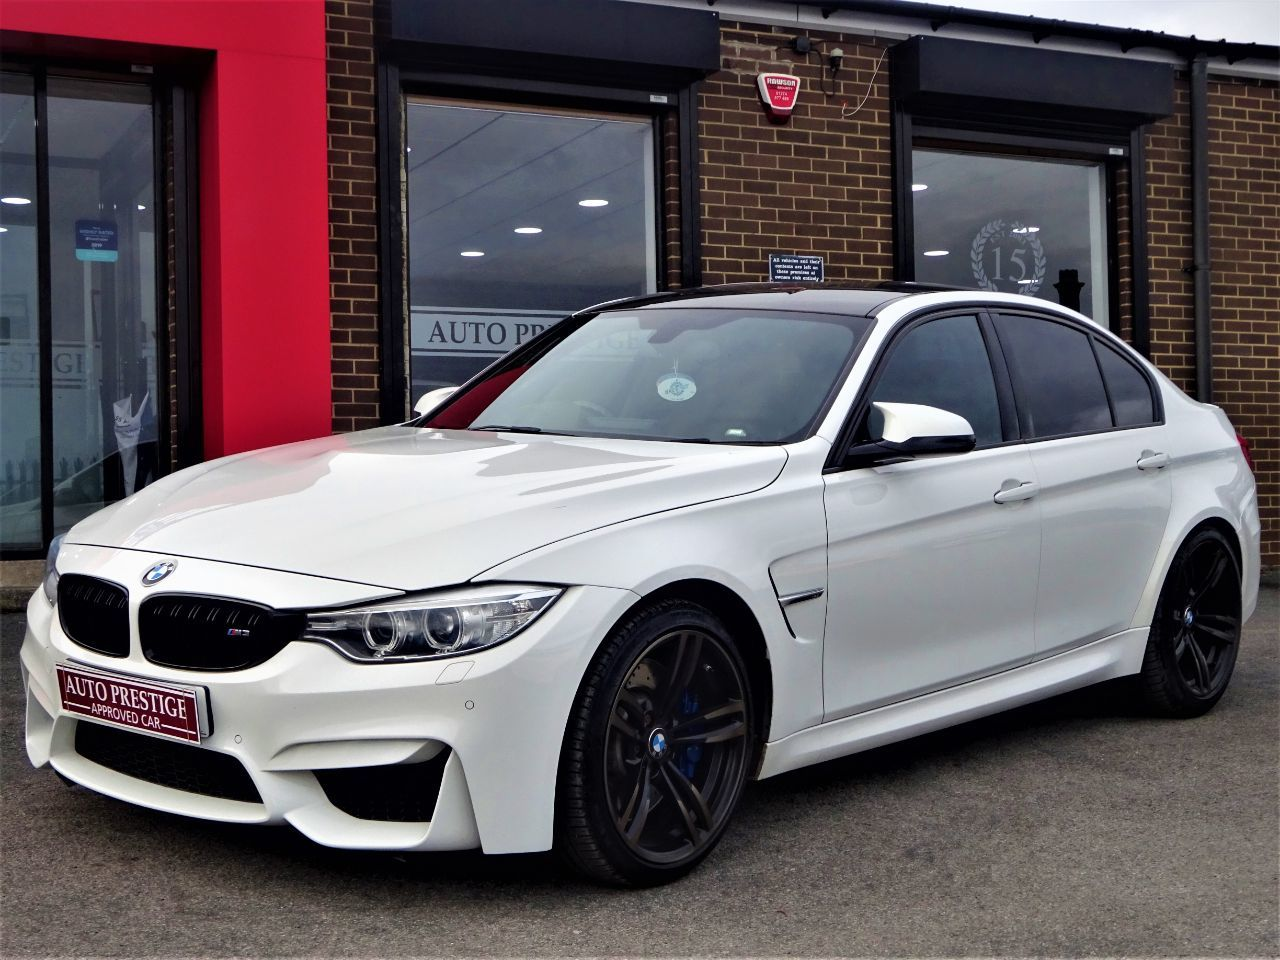 BMW M3 3.0 M3 4dr DCT HUGH SPEC 1 OWNER FROM NEW MINERAL WHITE Saloon Petrol White at Autoprestige Bradford